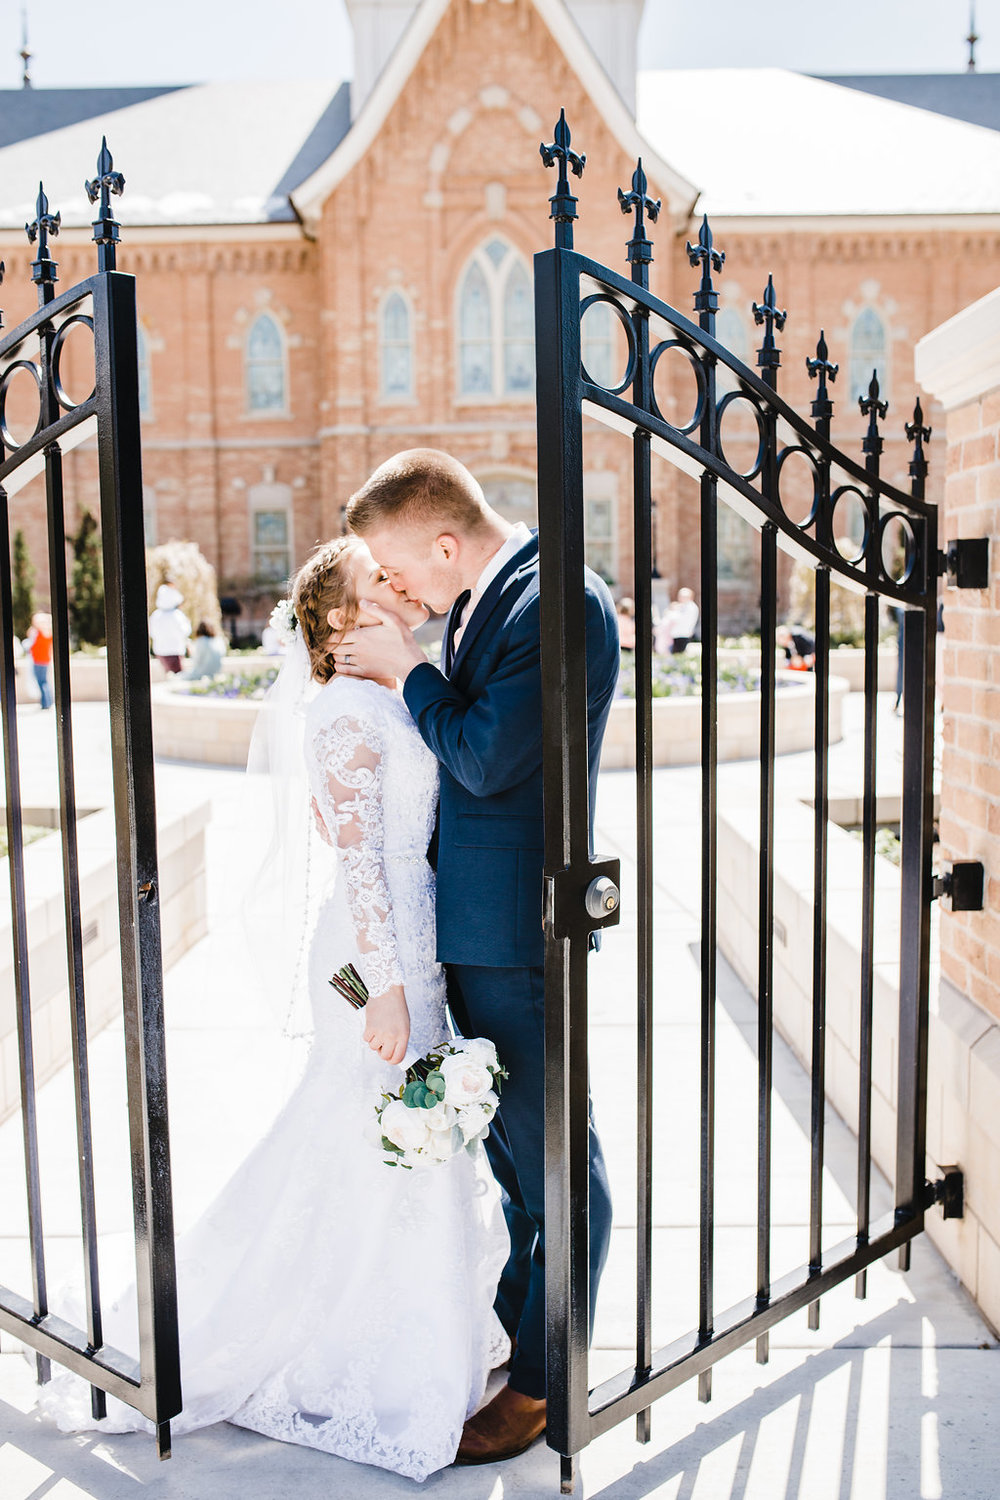 professional wedding day photographer prove city center lds temple